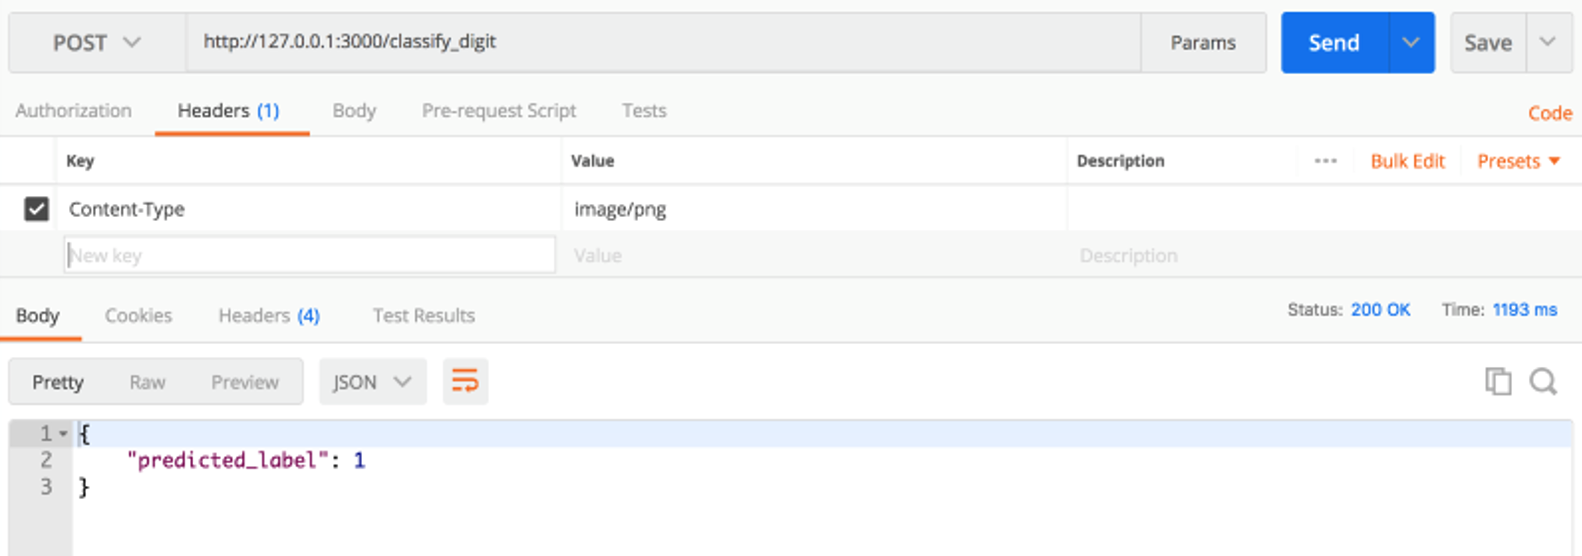 Testing with Postman